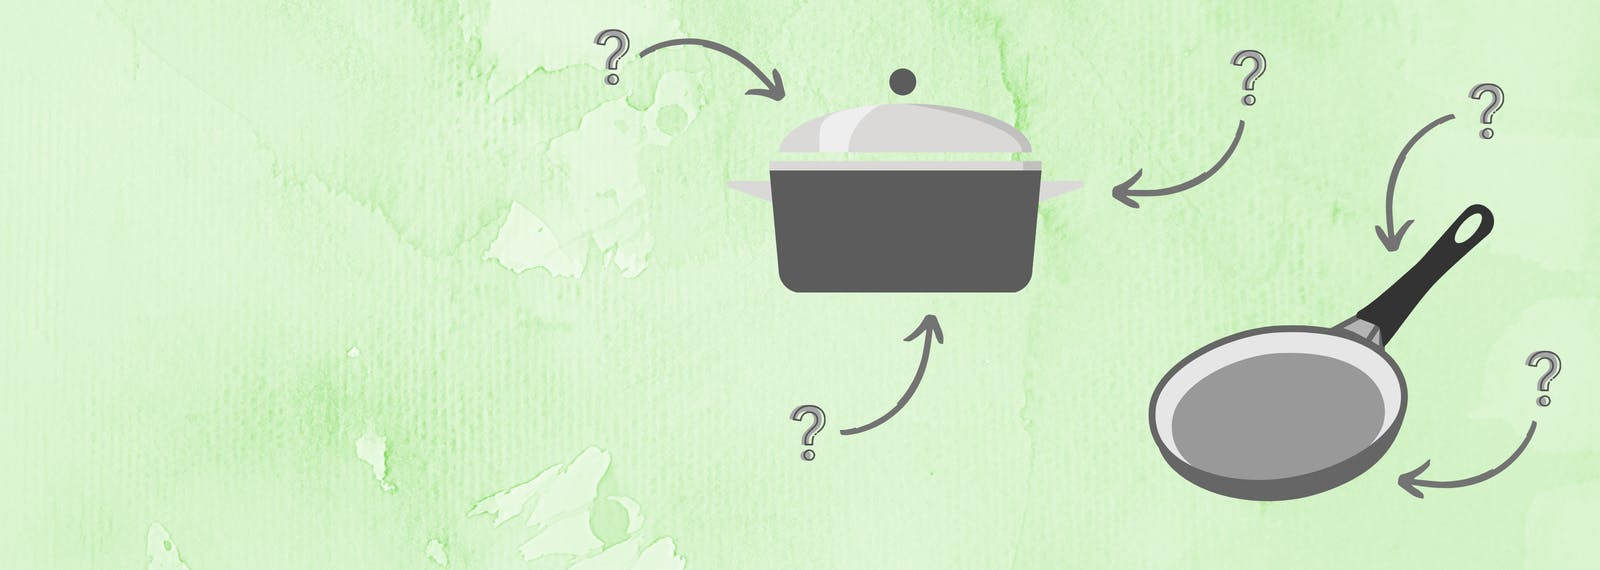 Anatomy of a Pan